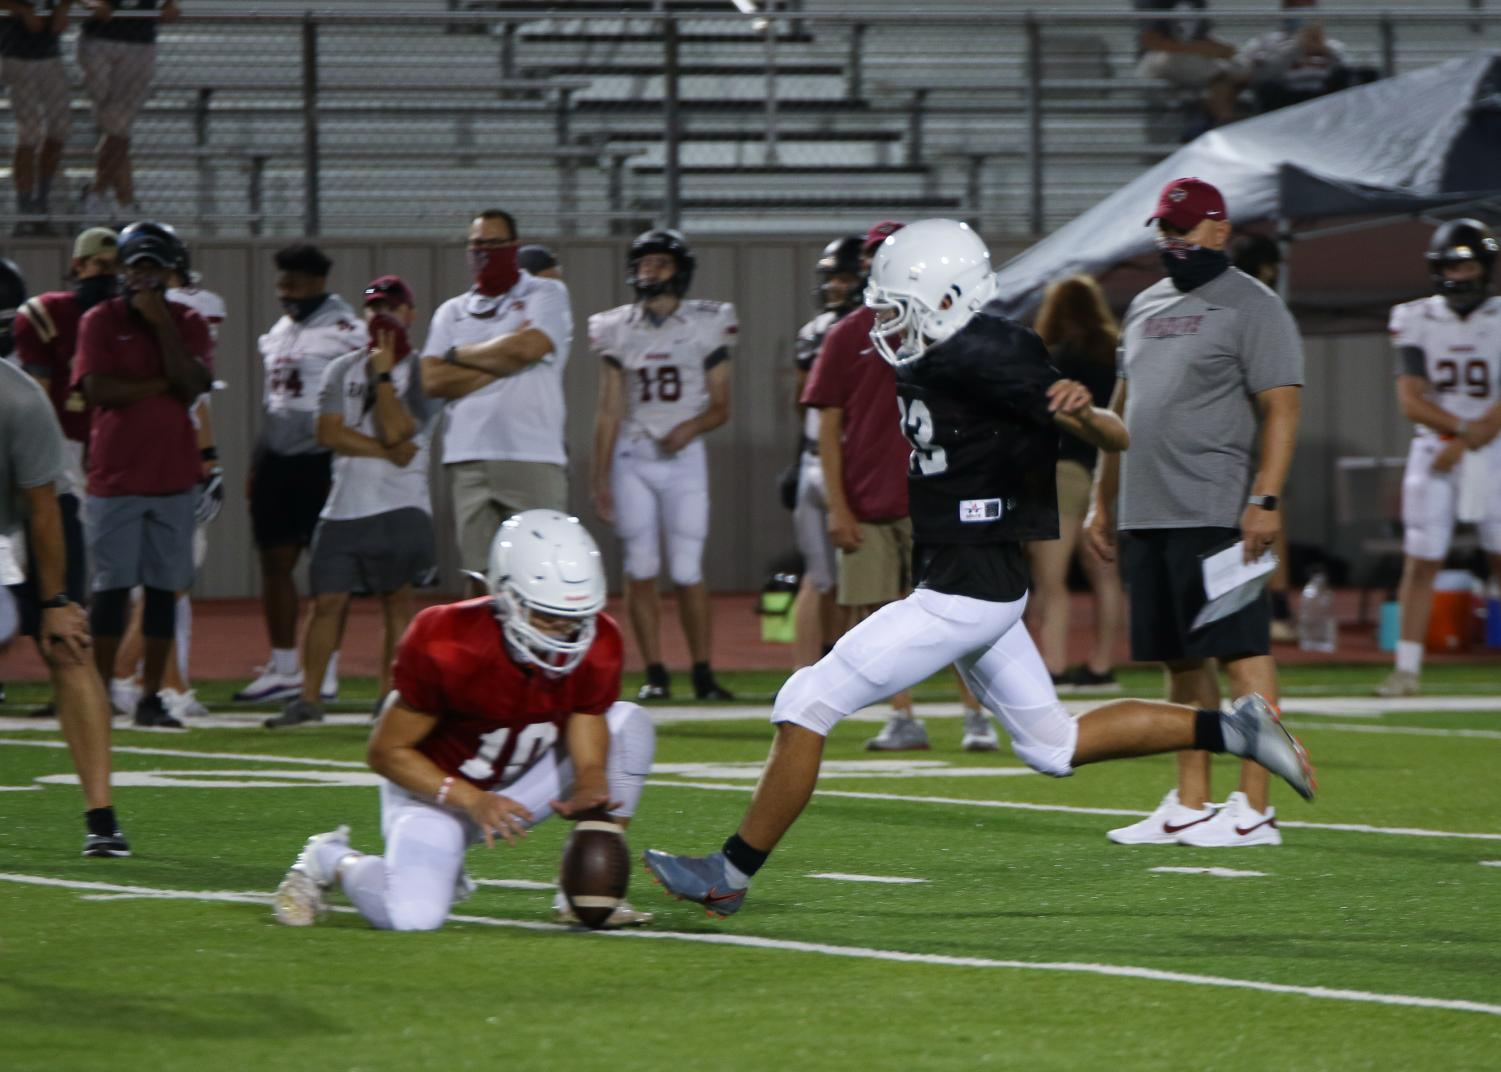 GALLERY%3A+Varsity+Football+Faces+Off+in+Preseason+Scrimmage+vs.+Rouse